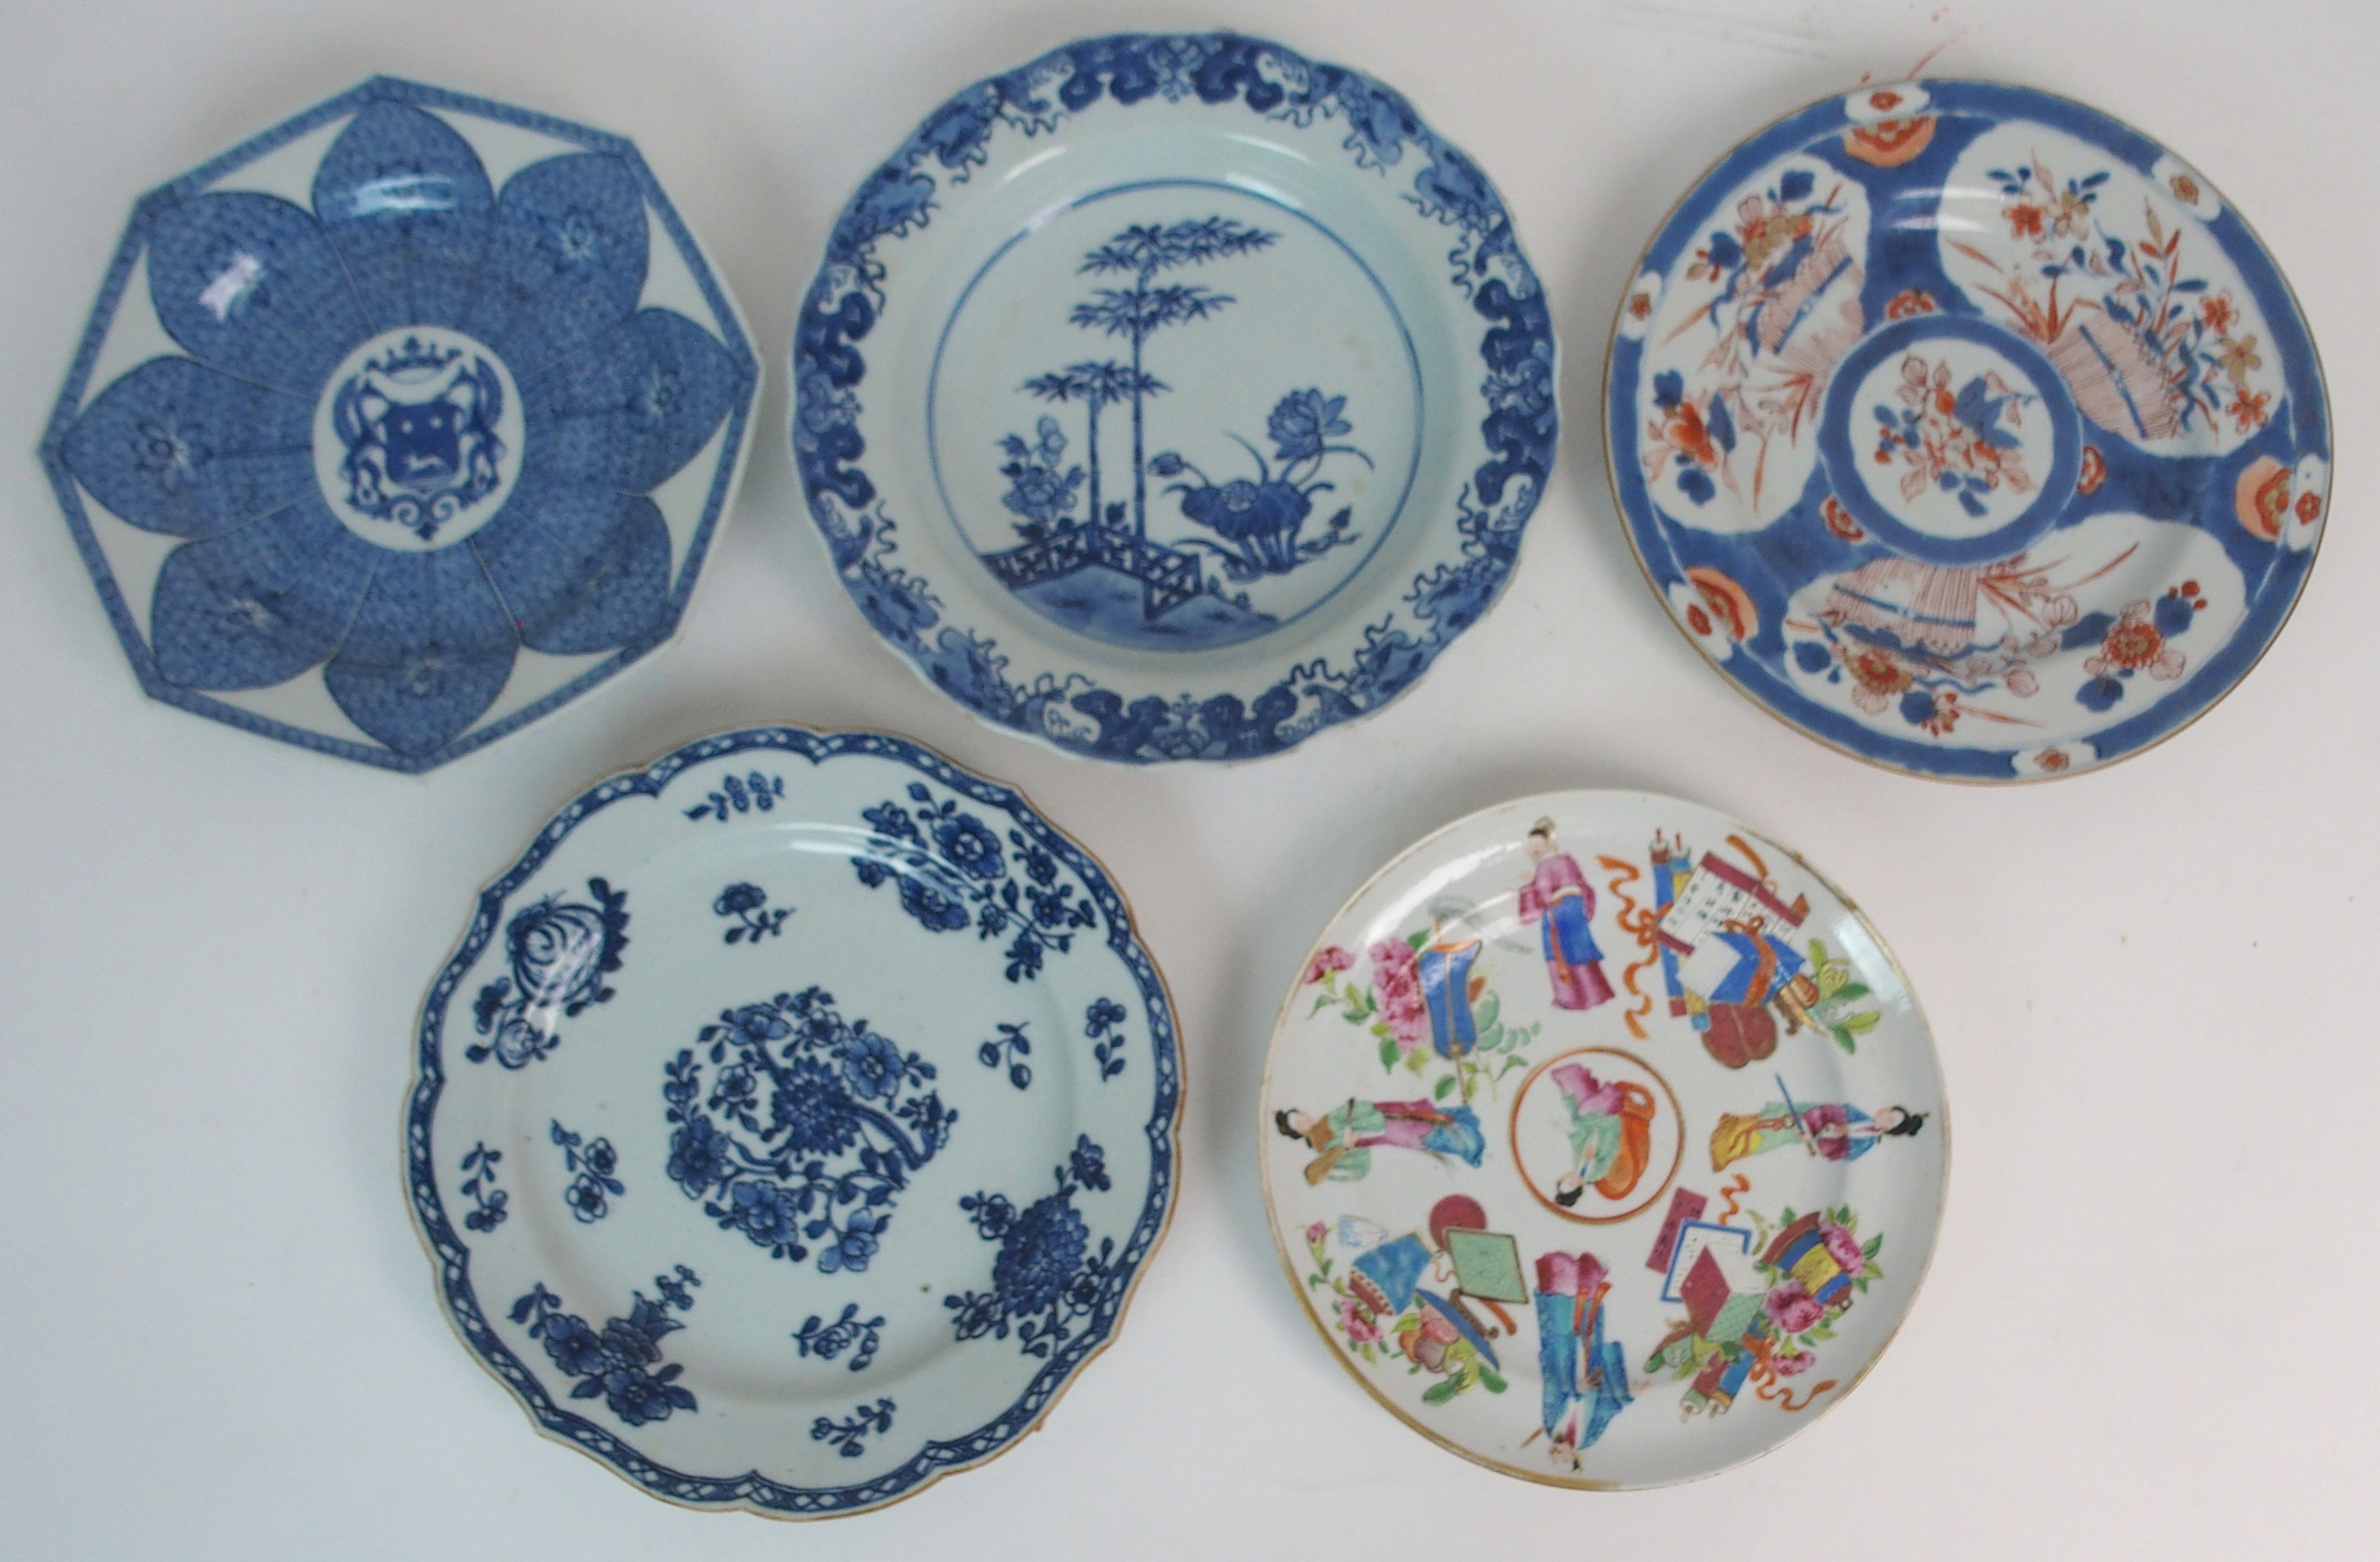 FIVE CHINESE EXPORT PLATES comprising; floral sprays, 22.5cm, Canton figures and precious objects,